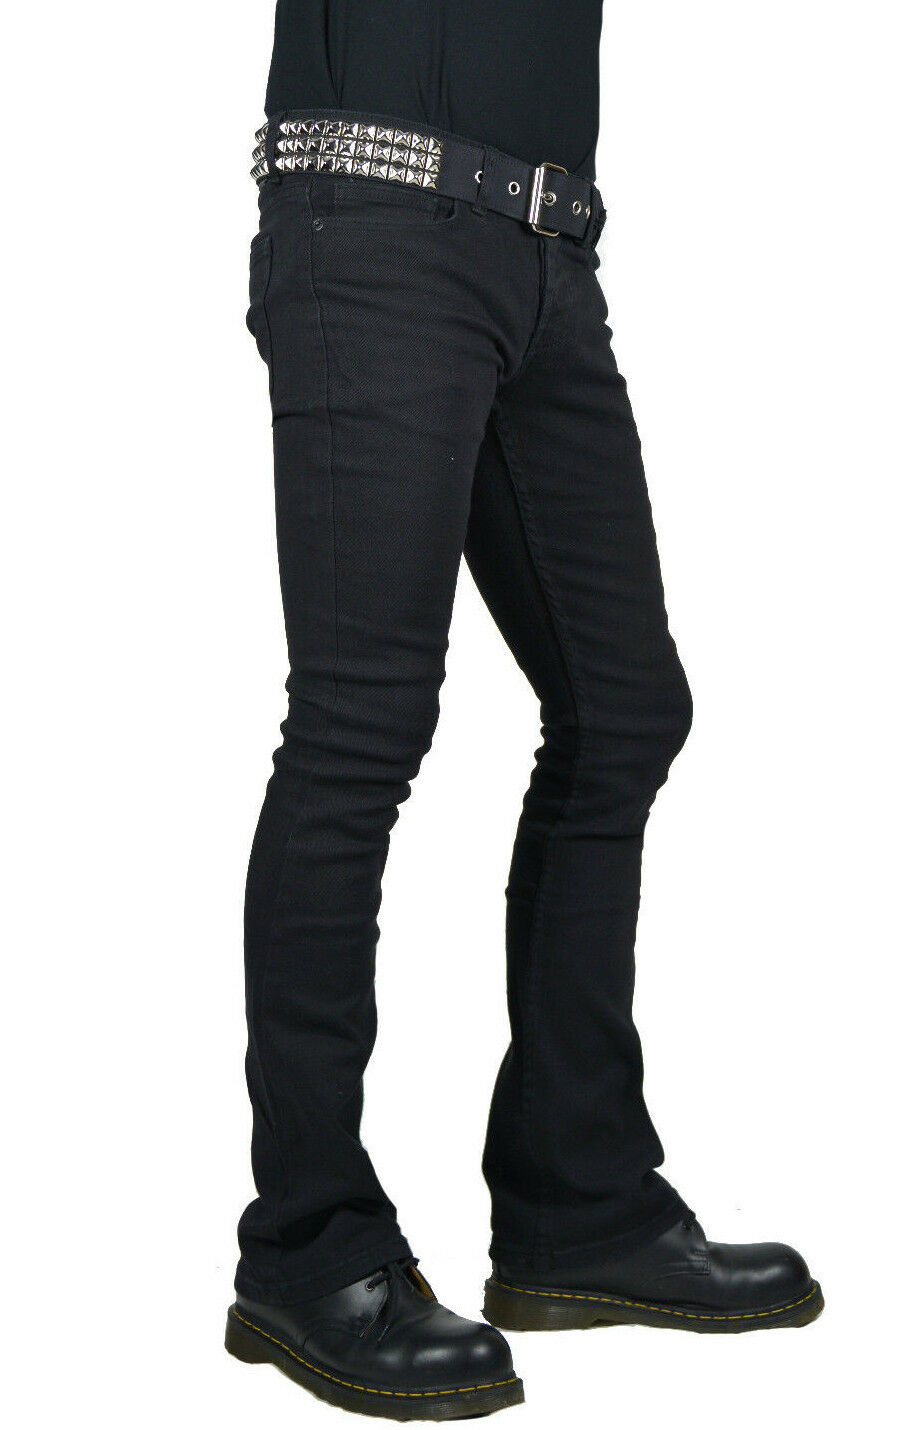 KILL CITY BOOT CUT ROCKER FIT FLARE RIFF GOTHIC PUNK STAGE JEANS PANTS BIKER Clothing, Shoes & Accessories